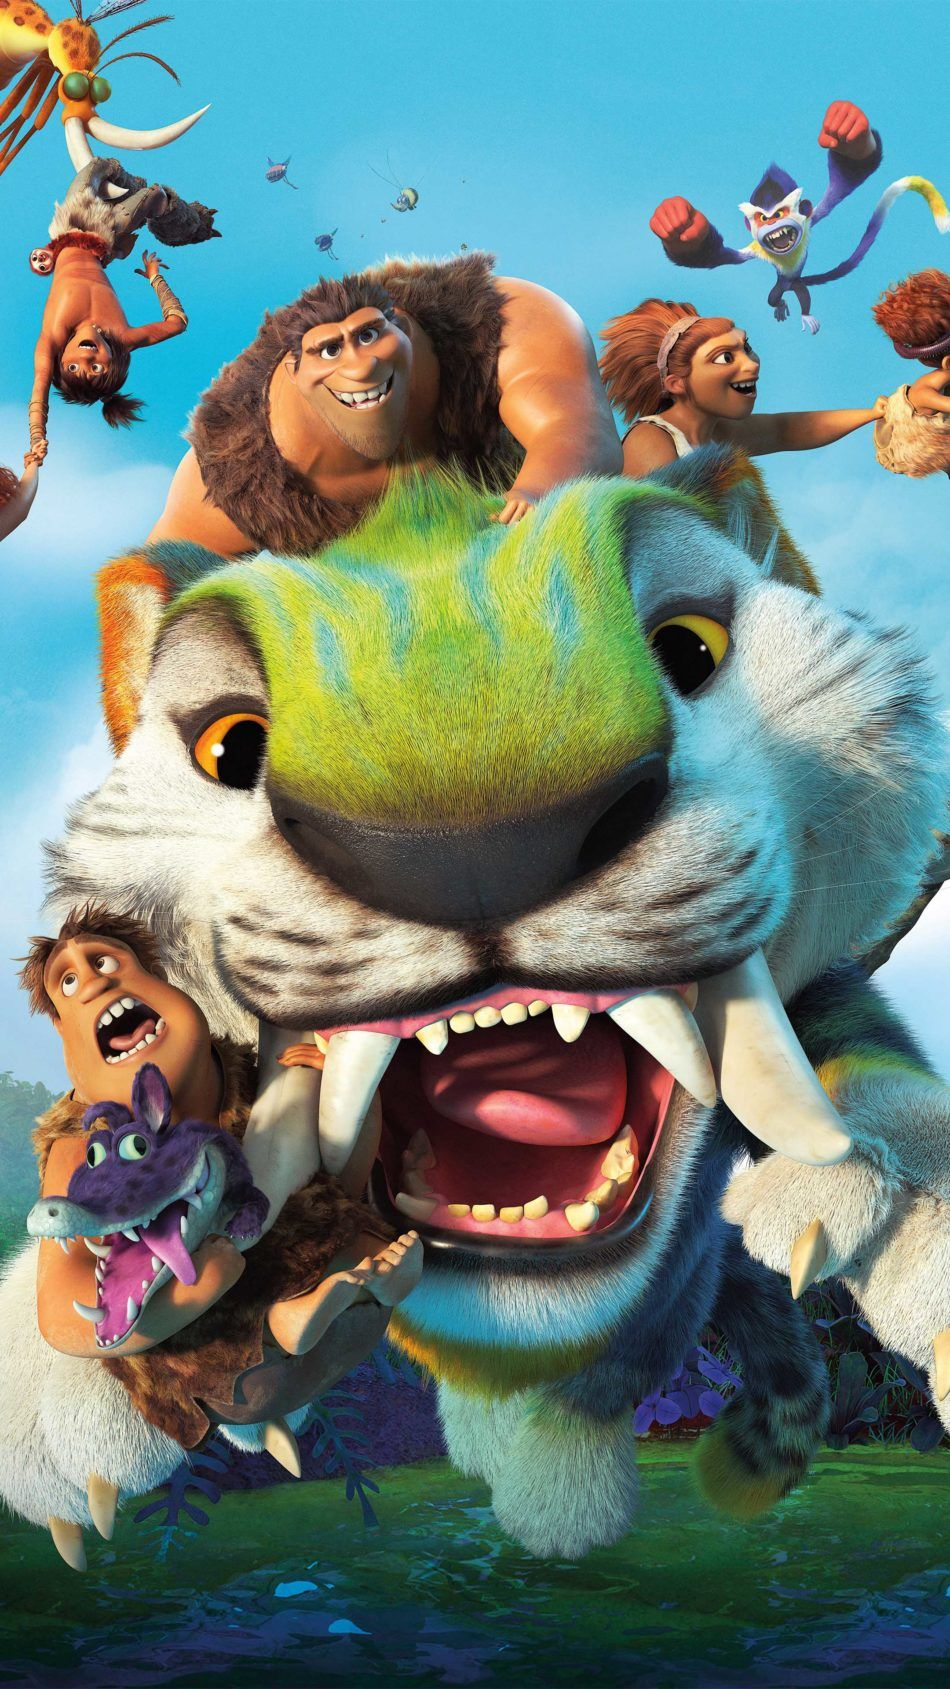 The Croods A New Age 2020 Poster 4k Ultra Hd Mobile Wallpaper Cartoon Wallpaper Hd Cartoon Wallpaper Cute Cartoon Pictures Animated cartoon wallpaper android